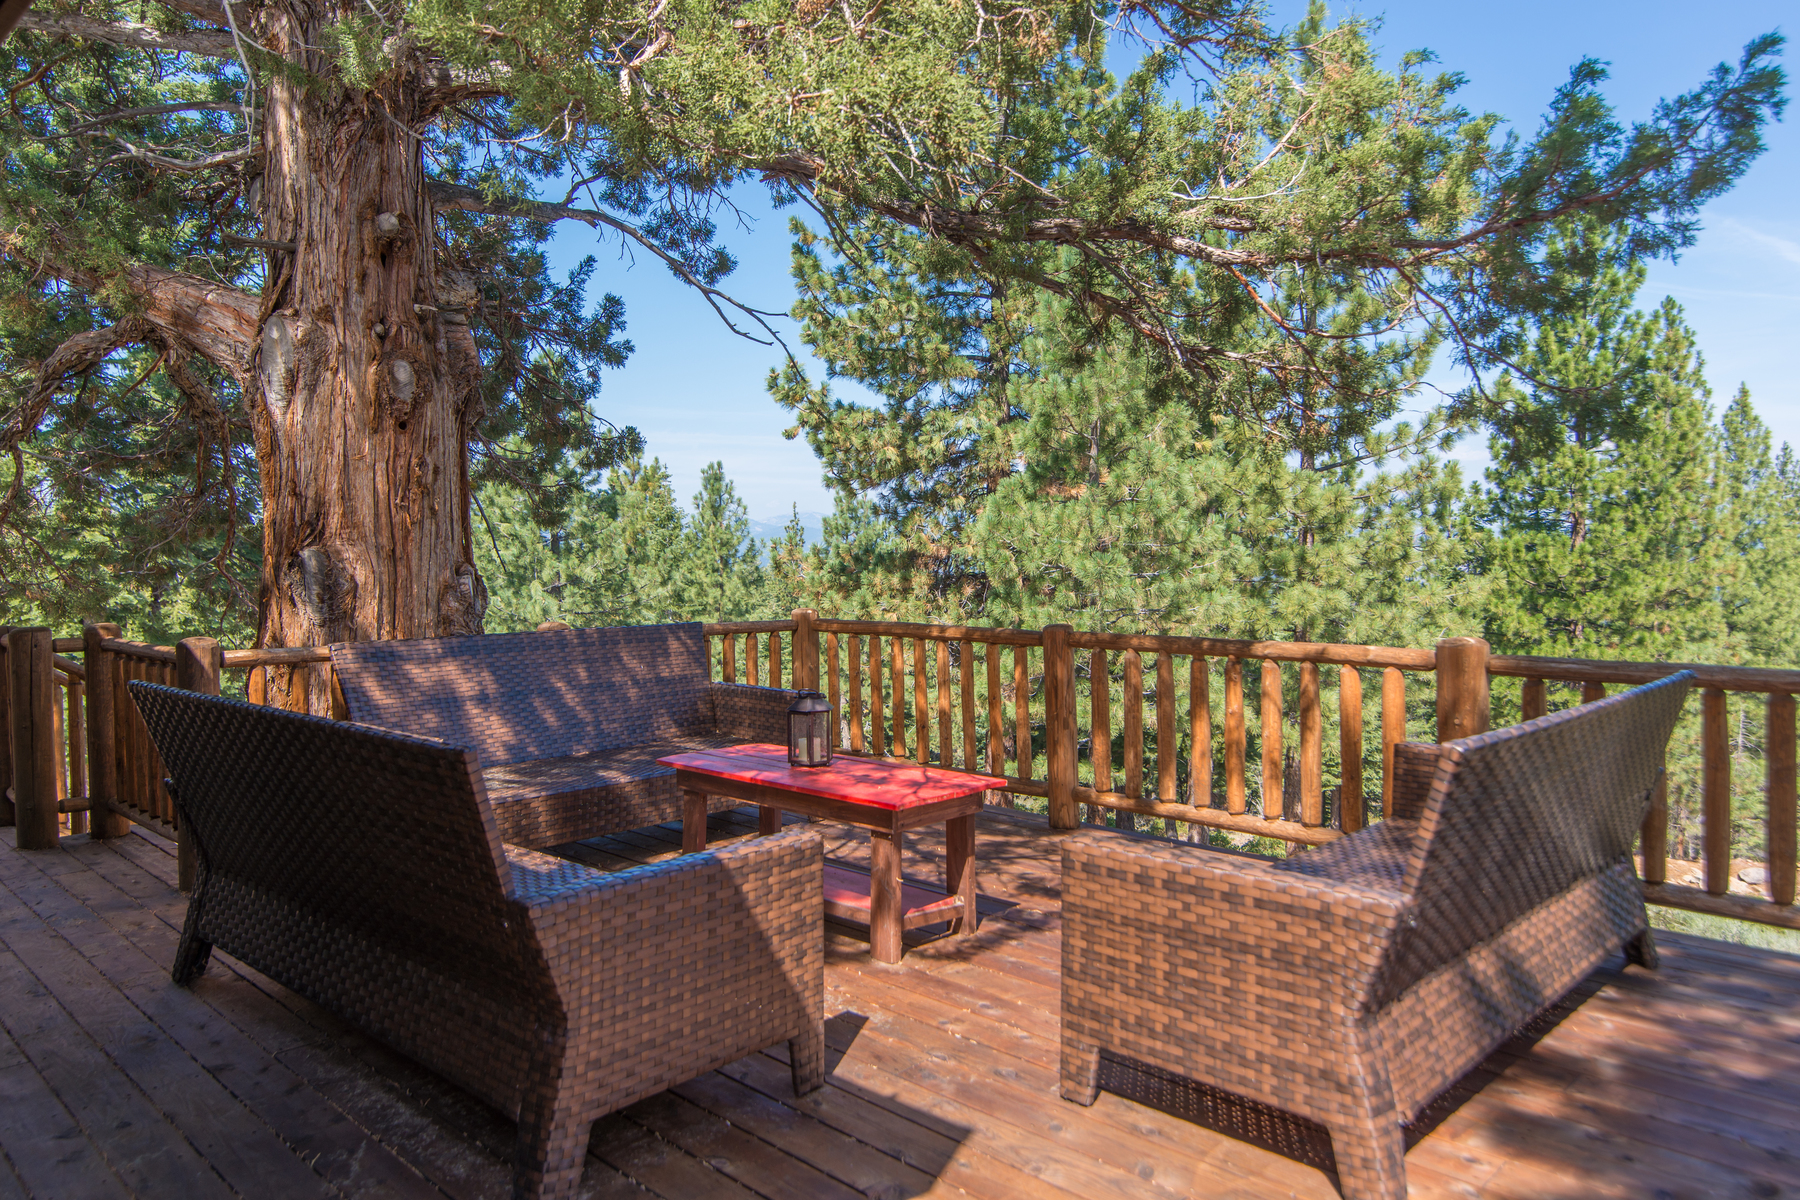 Single Family Home for Active at 13834 Martis Peak Road,Truckee, CA 13834 Martis Peak Road Truckee, California 96161 United States